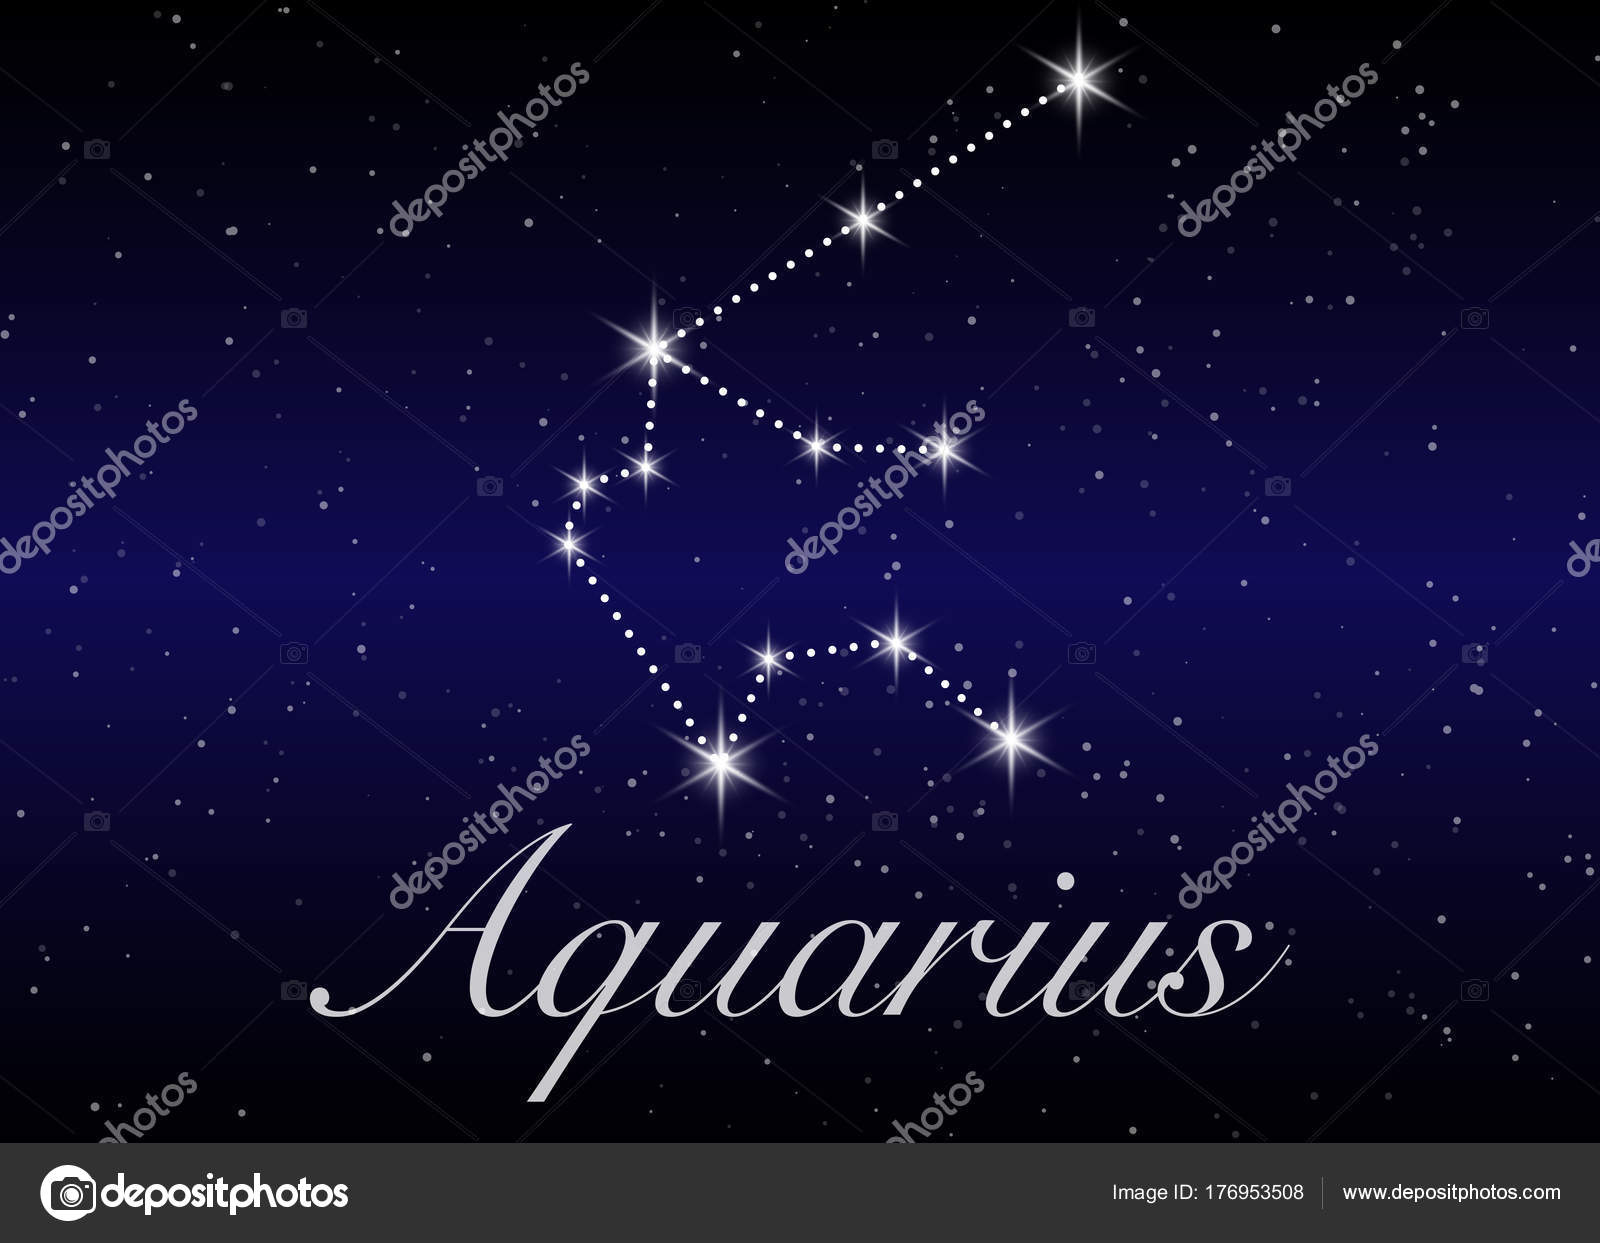 Aquarius Zodiac Constellations Sign On Beautiful Starry Sky With